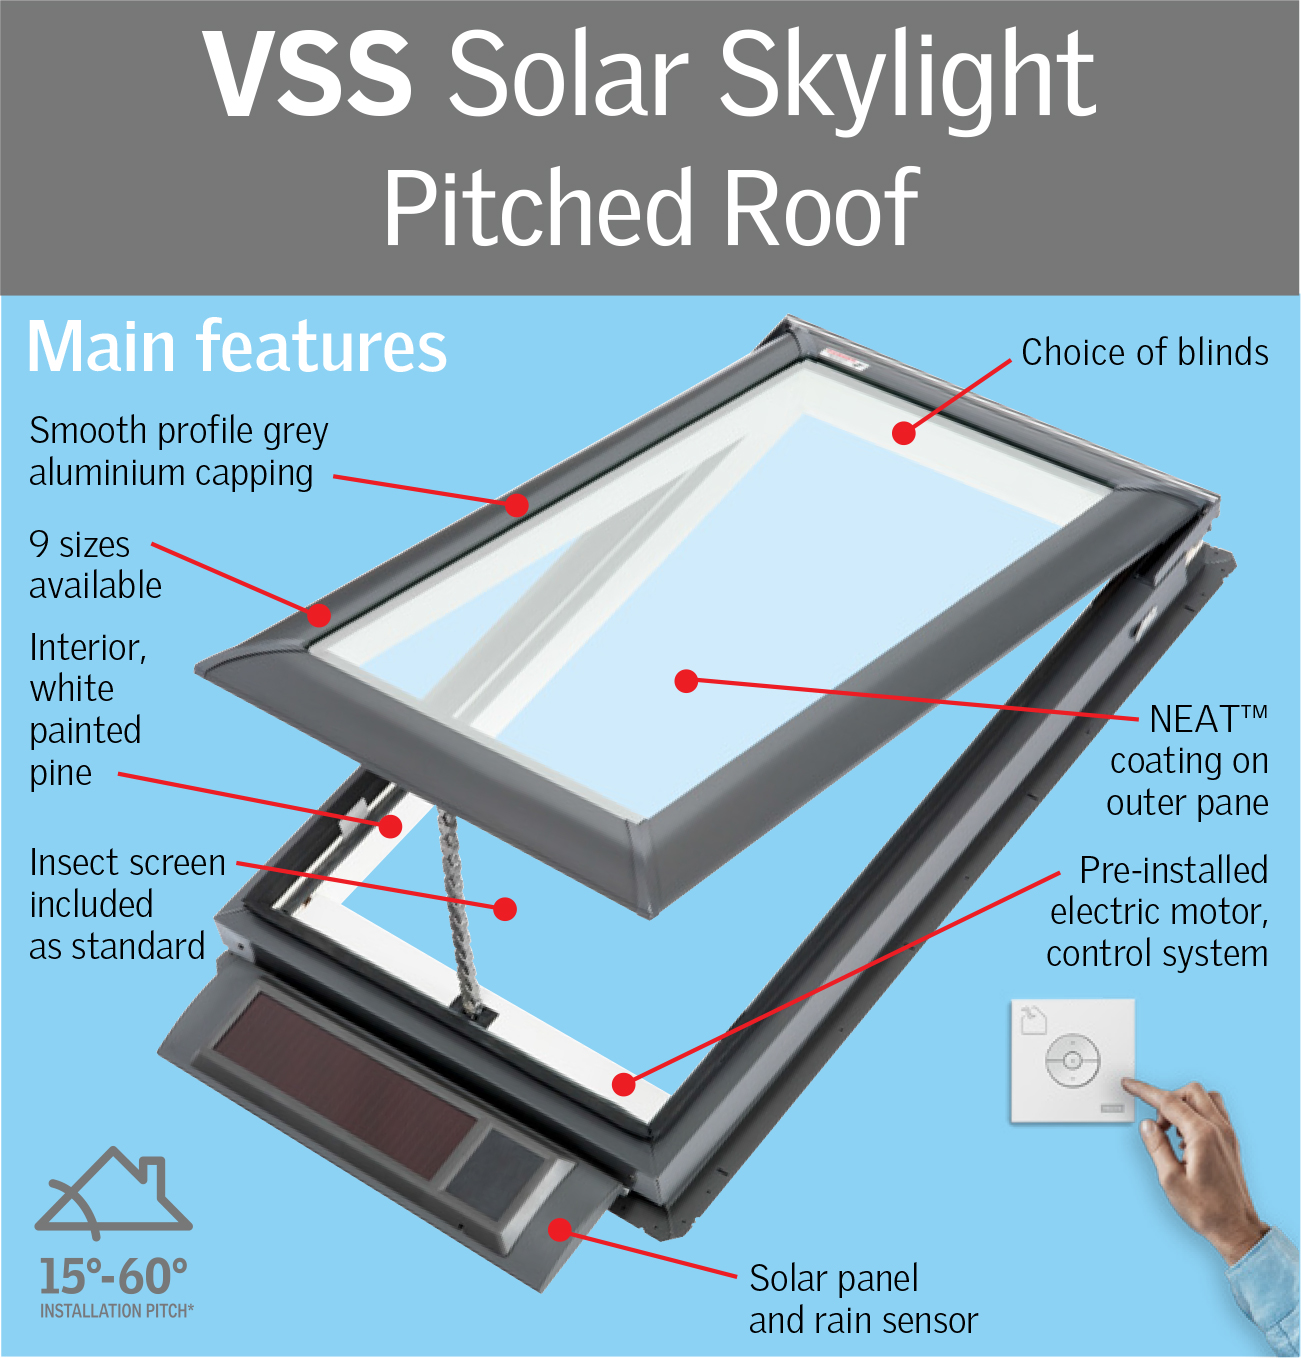 VSS-Solar-Skylight-Pitched-Roof